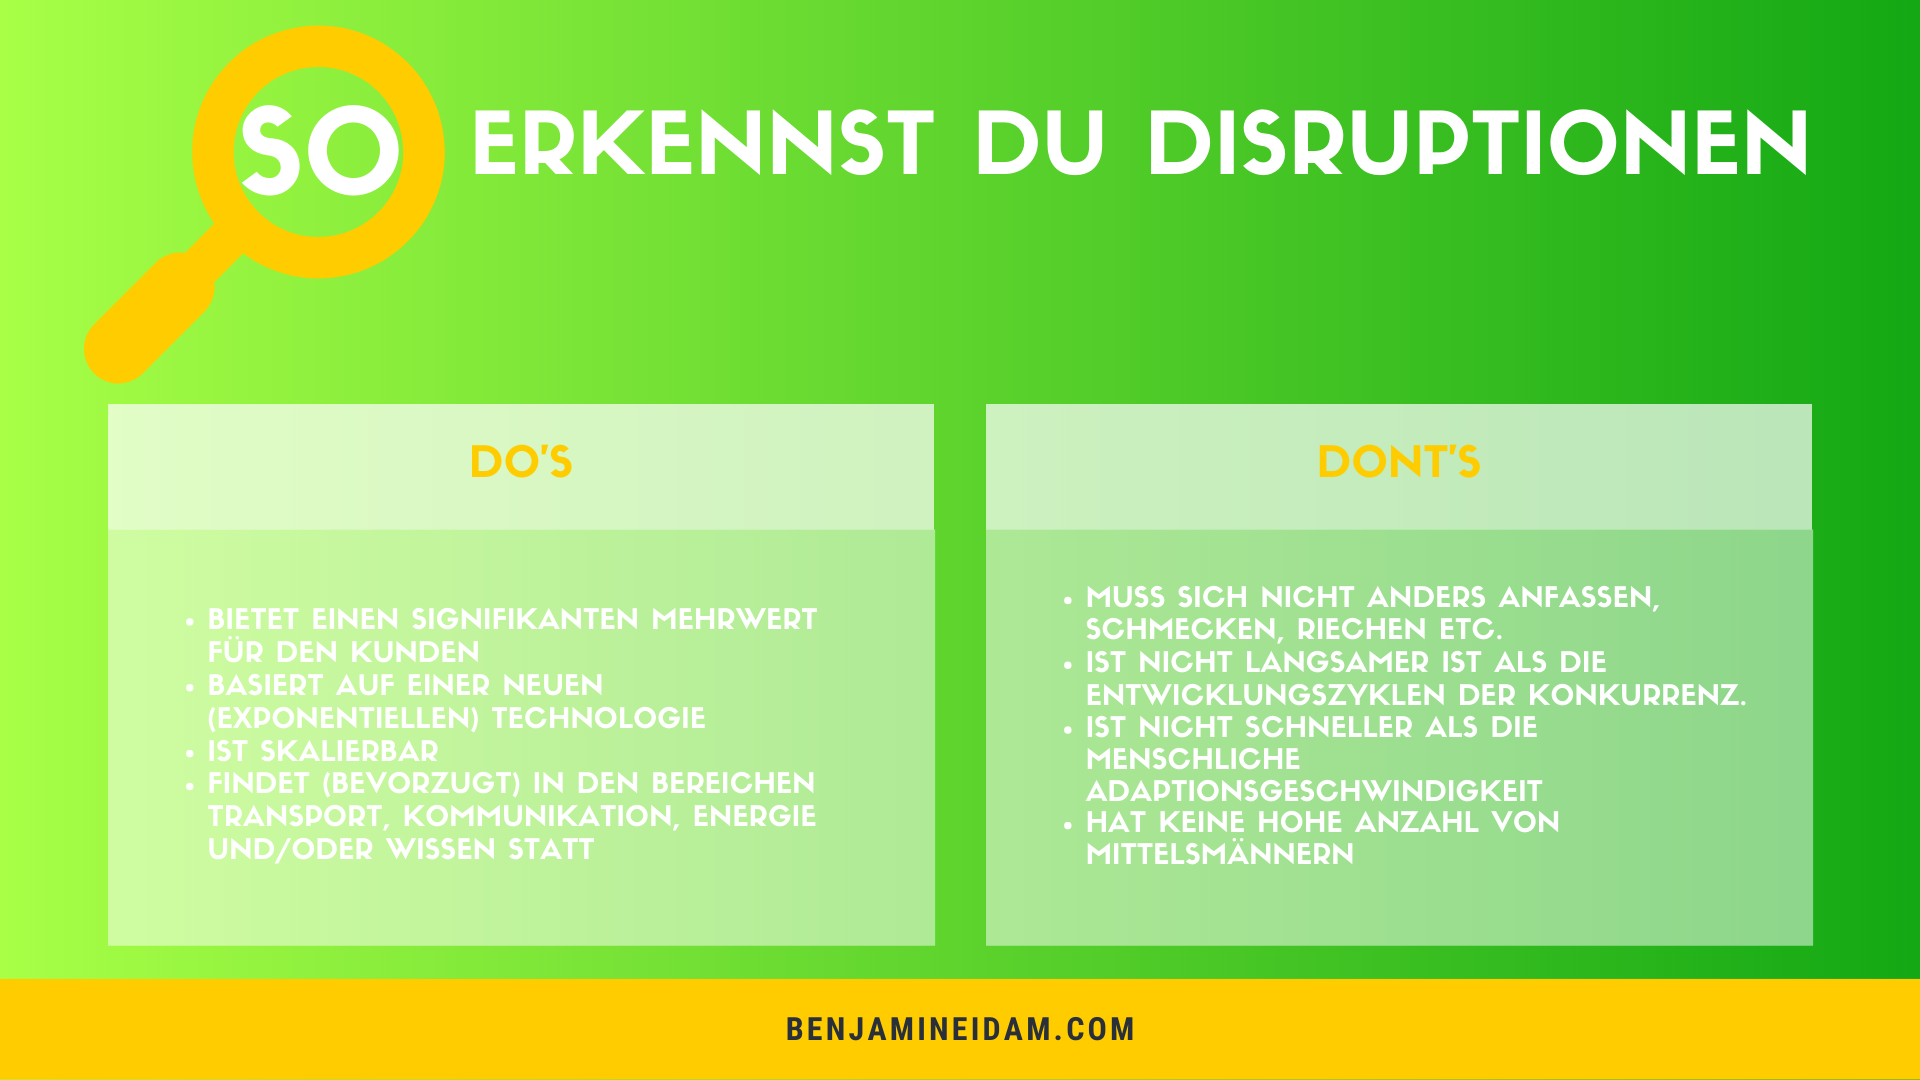 Disruption - So erkennst du Disruptionen